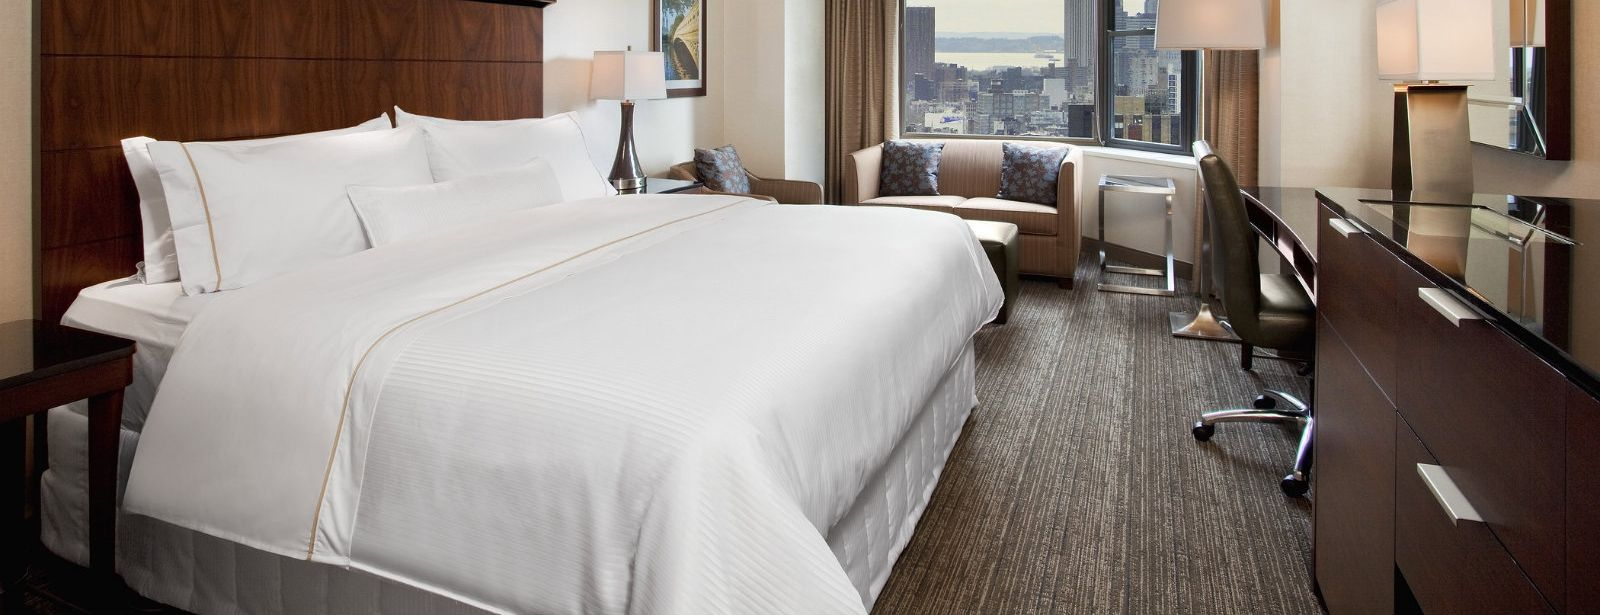 Midtown Manhattan Accommodations - Premium Corner Rooms